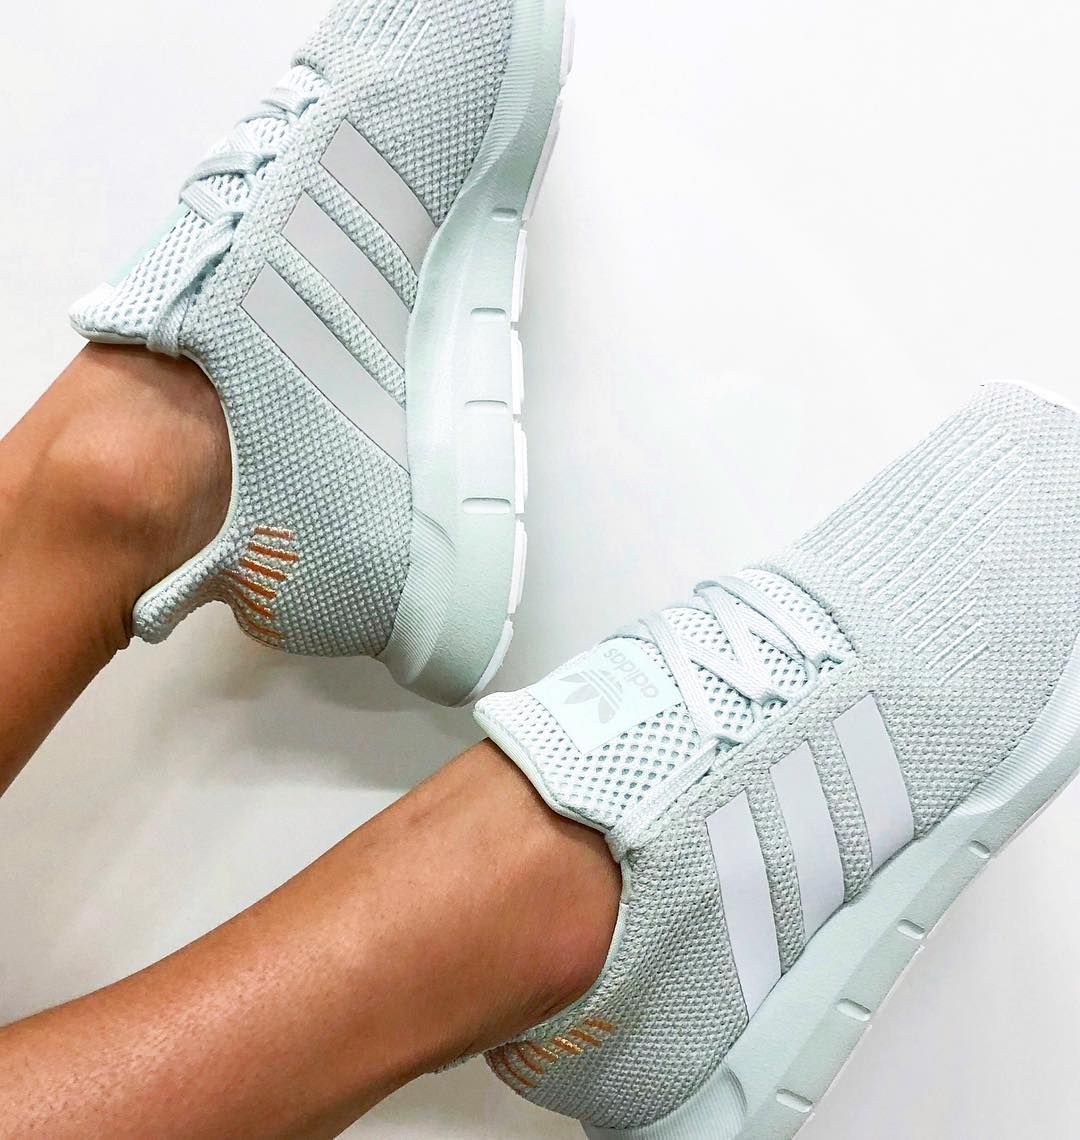 buy online 6c6d0 05f67 The new adidas Originals Swift Run in Vapour Green✨ available from  stylerunner.com. Cool mint green adidas sneakers for 2018.